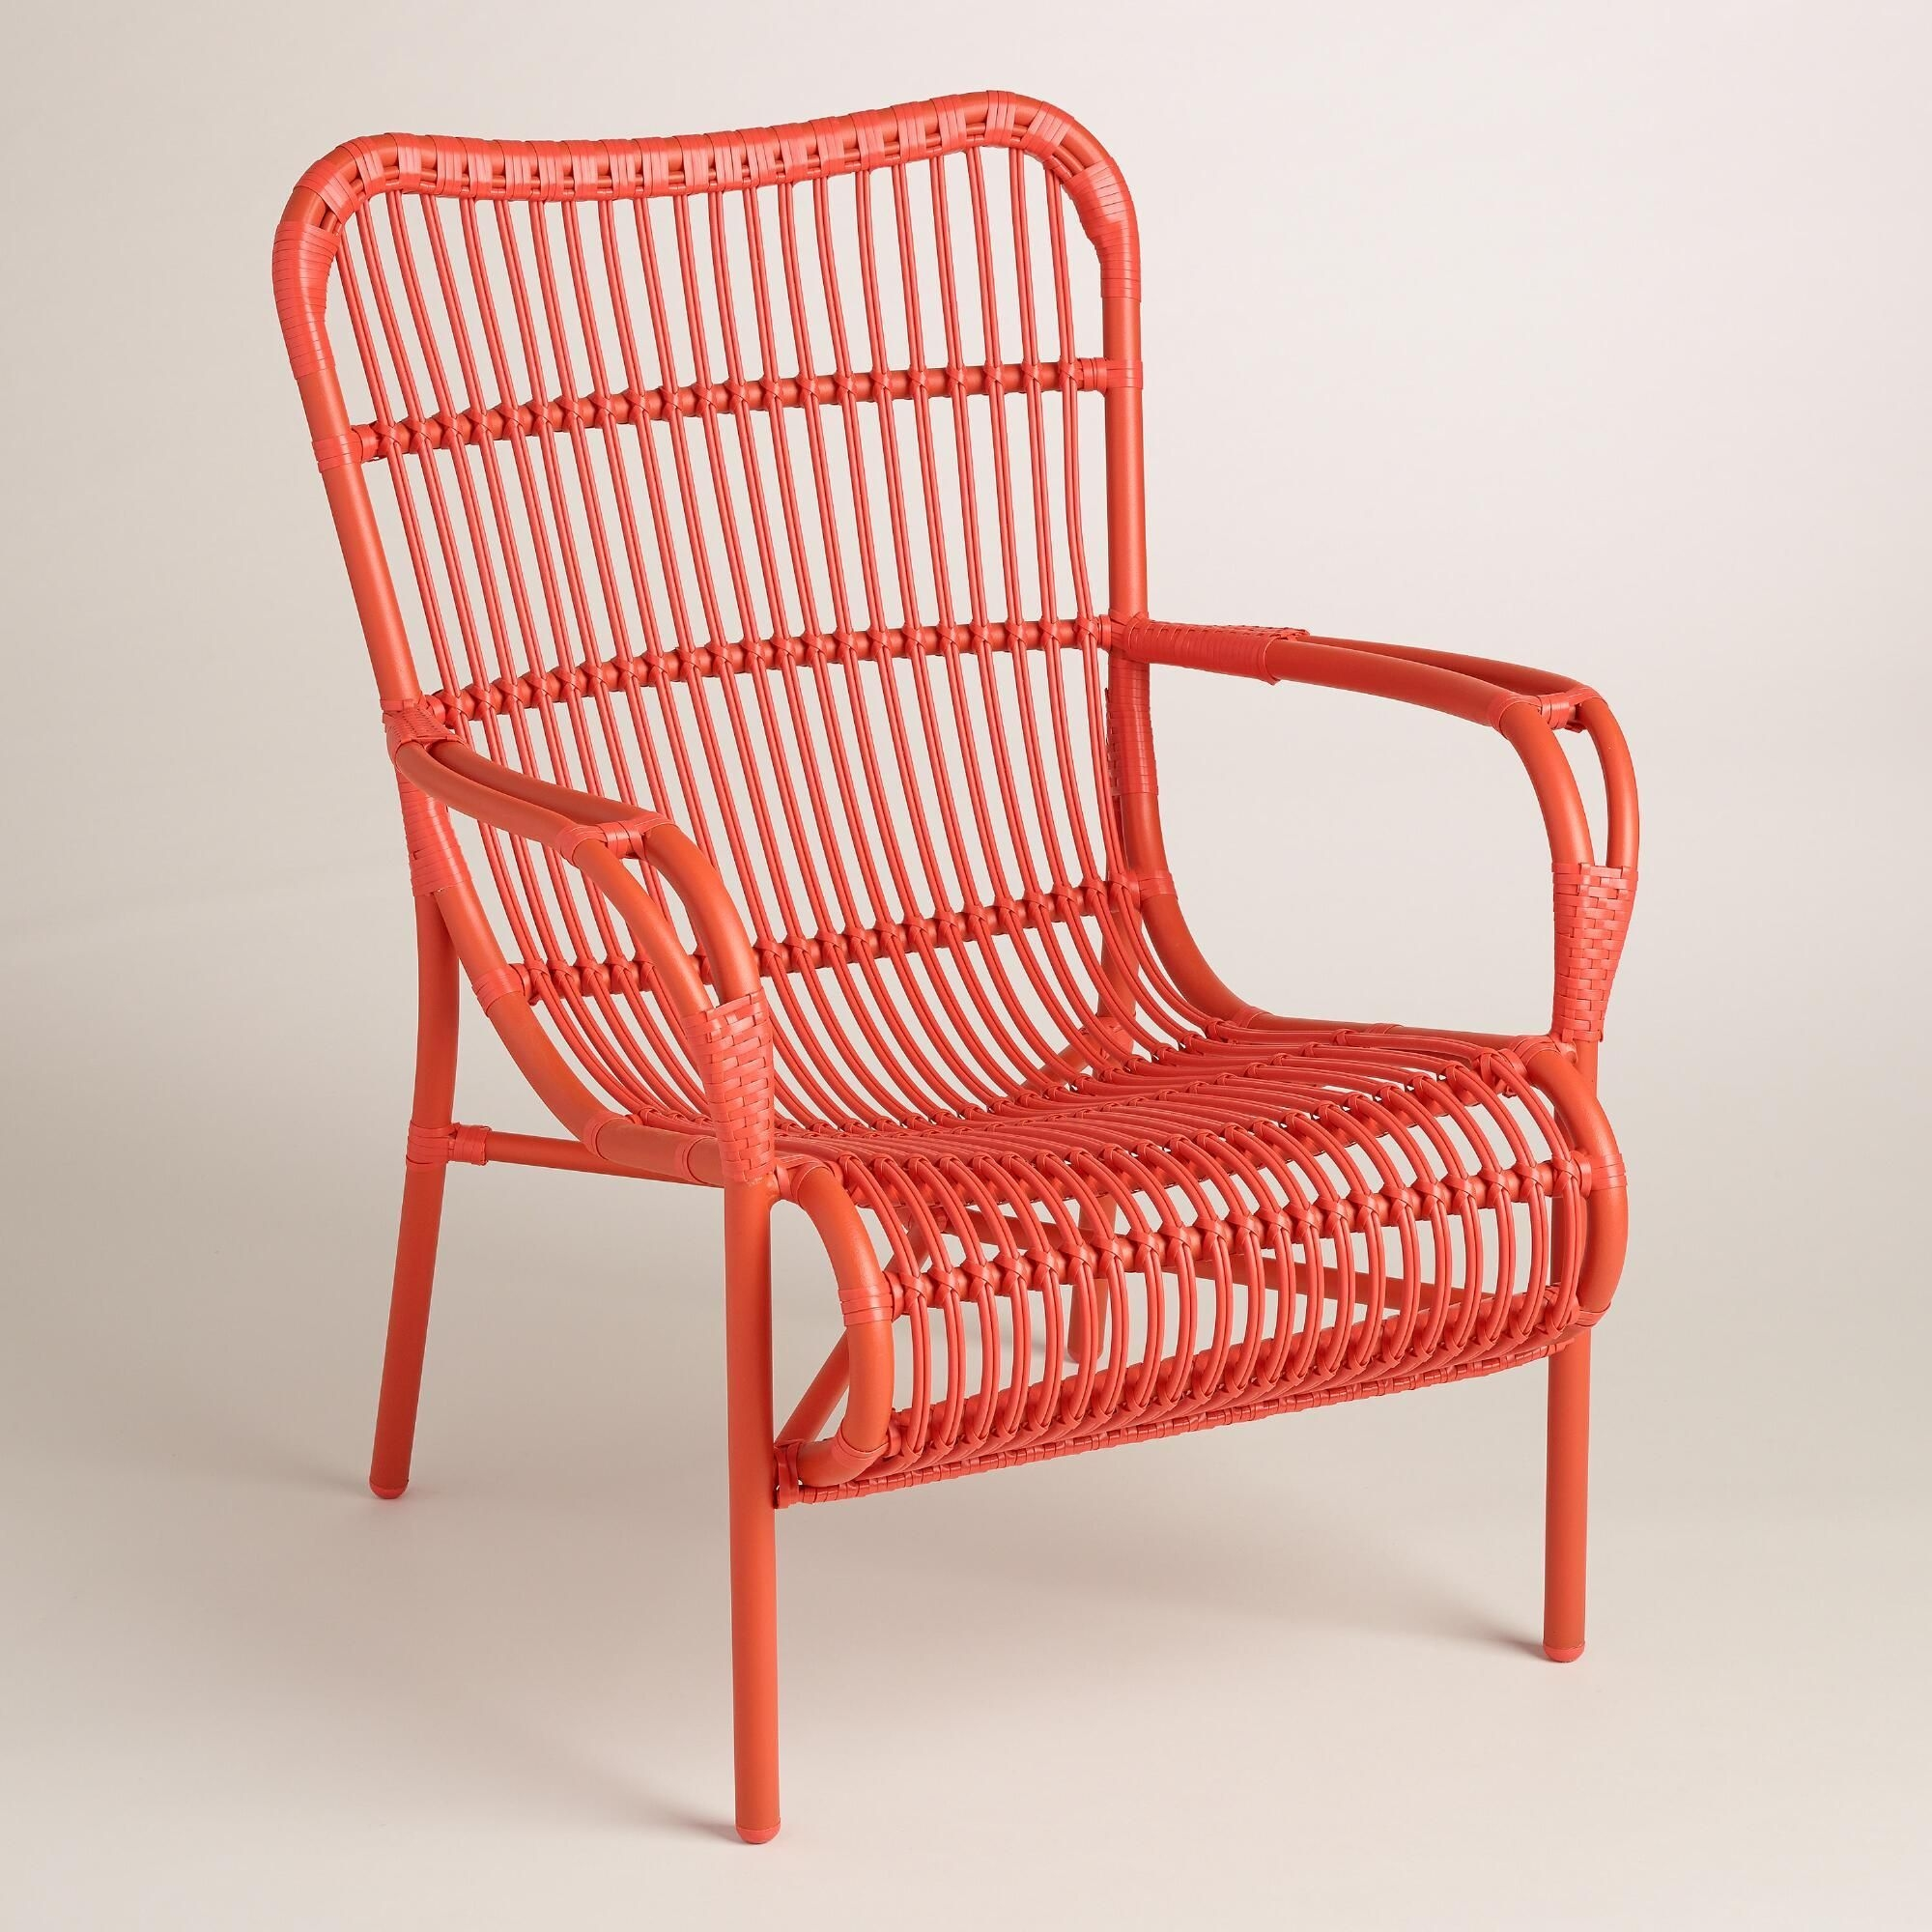 Wicker Patio Chairs - Foter